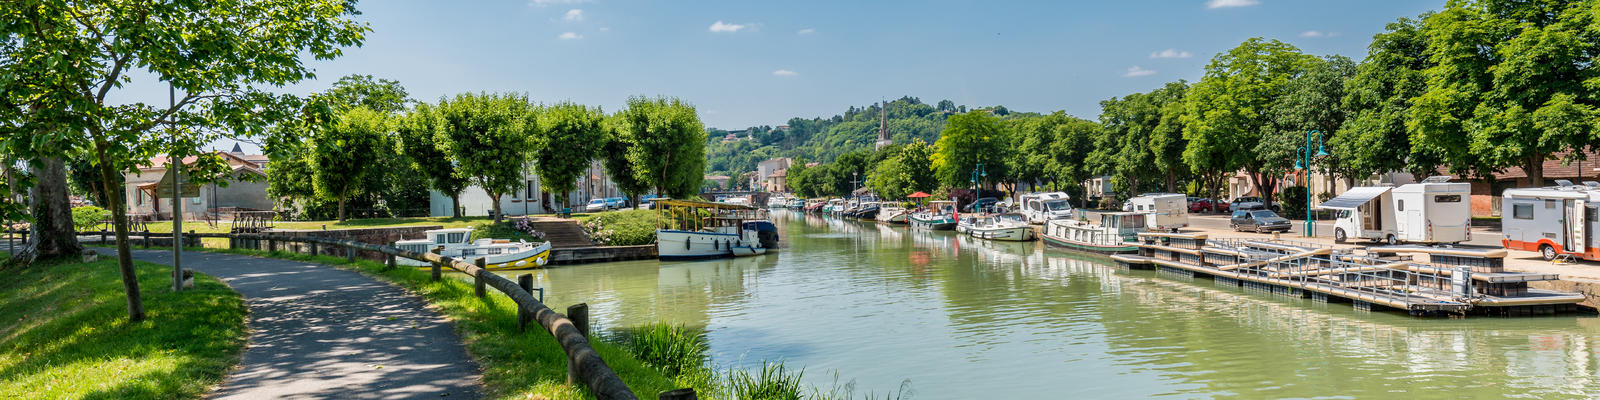 10 Reasons French Barge Cruises Are Picture-Perfect (Photo: Anibal Trejo/Shutterstock.com)